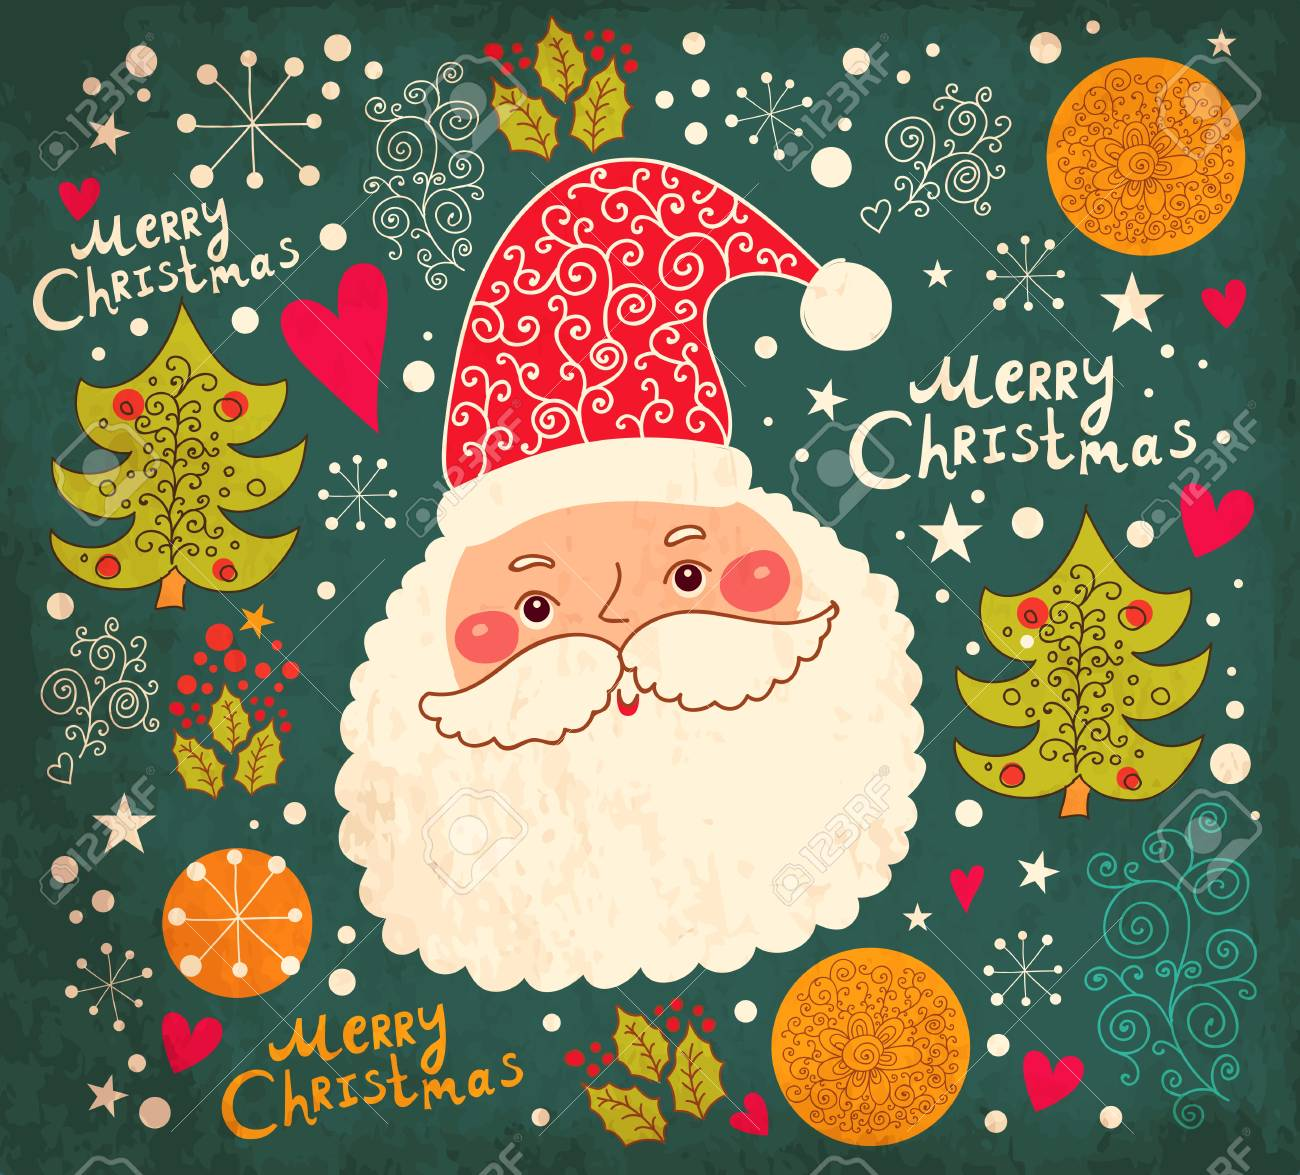 Christmas illustration with funny Santa Claus Stock Vector - 16929866